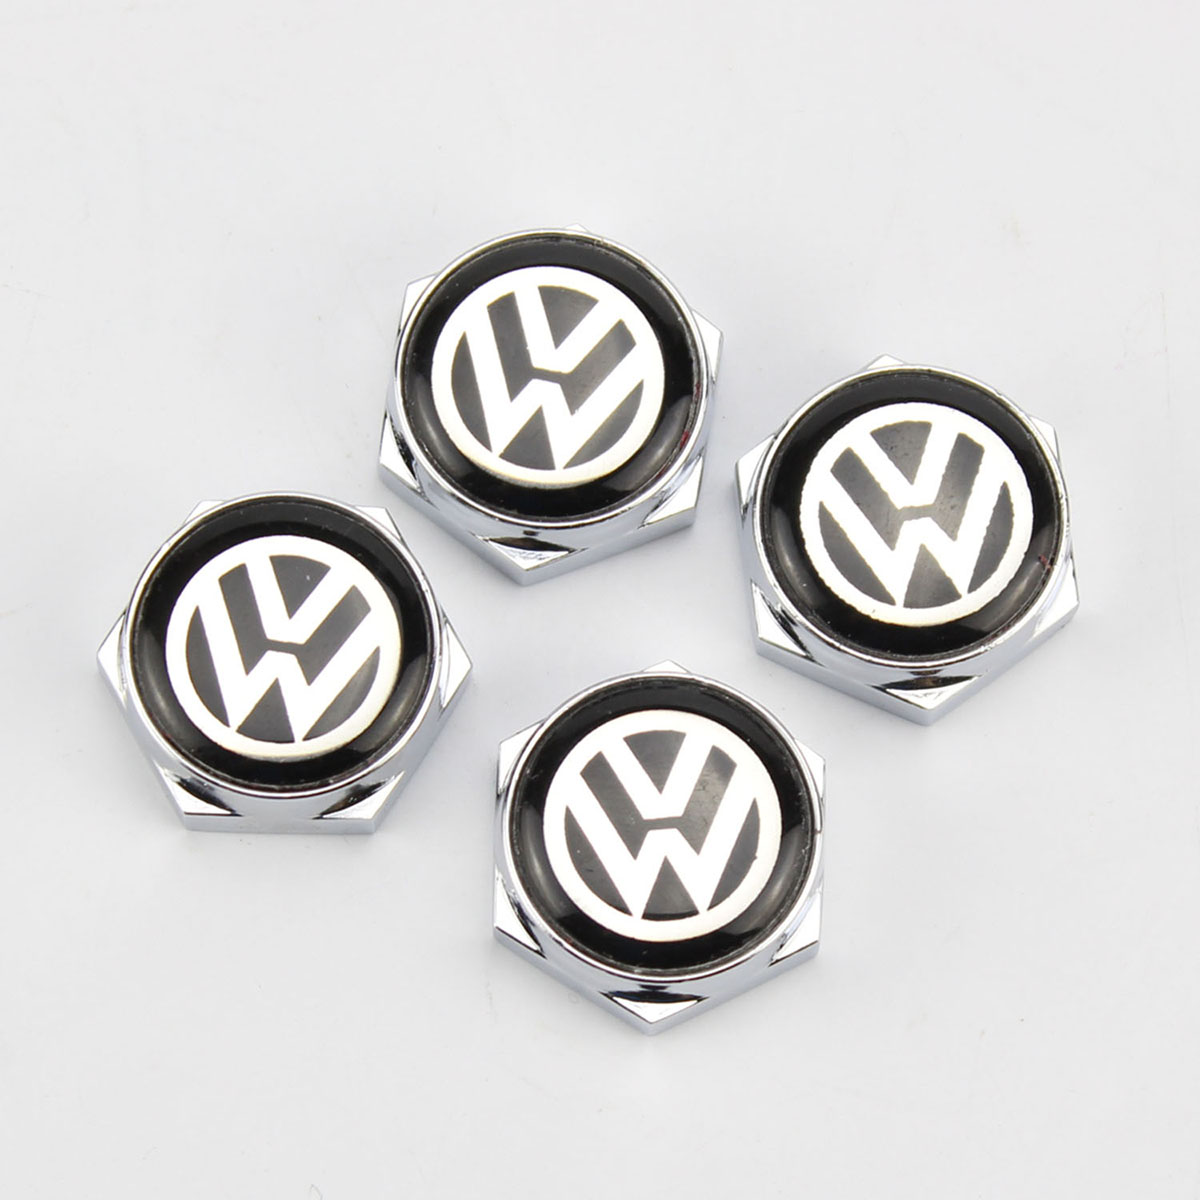 4pcs Stainless Steel Bolt License Plate Frame Screw Cap For VW Volkswagen Jetta Golf Passat